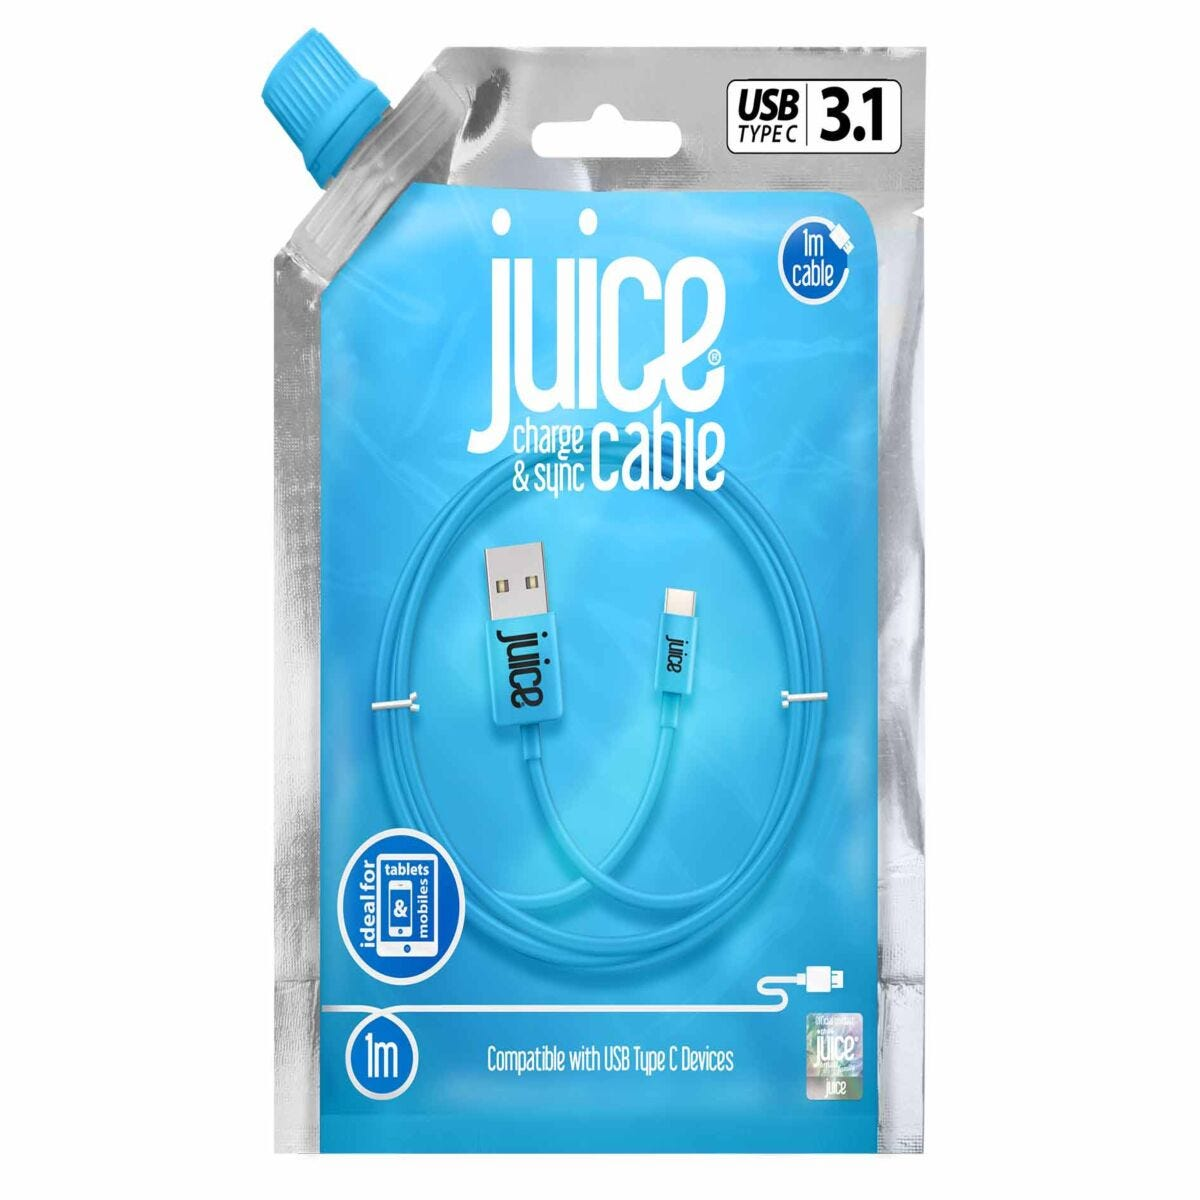 Juice Type C to USB Cable 1m